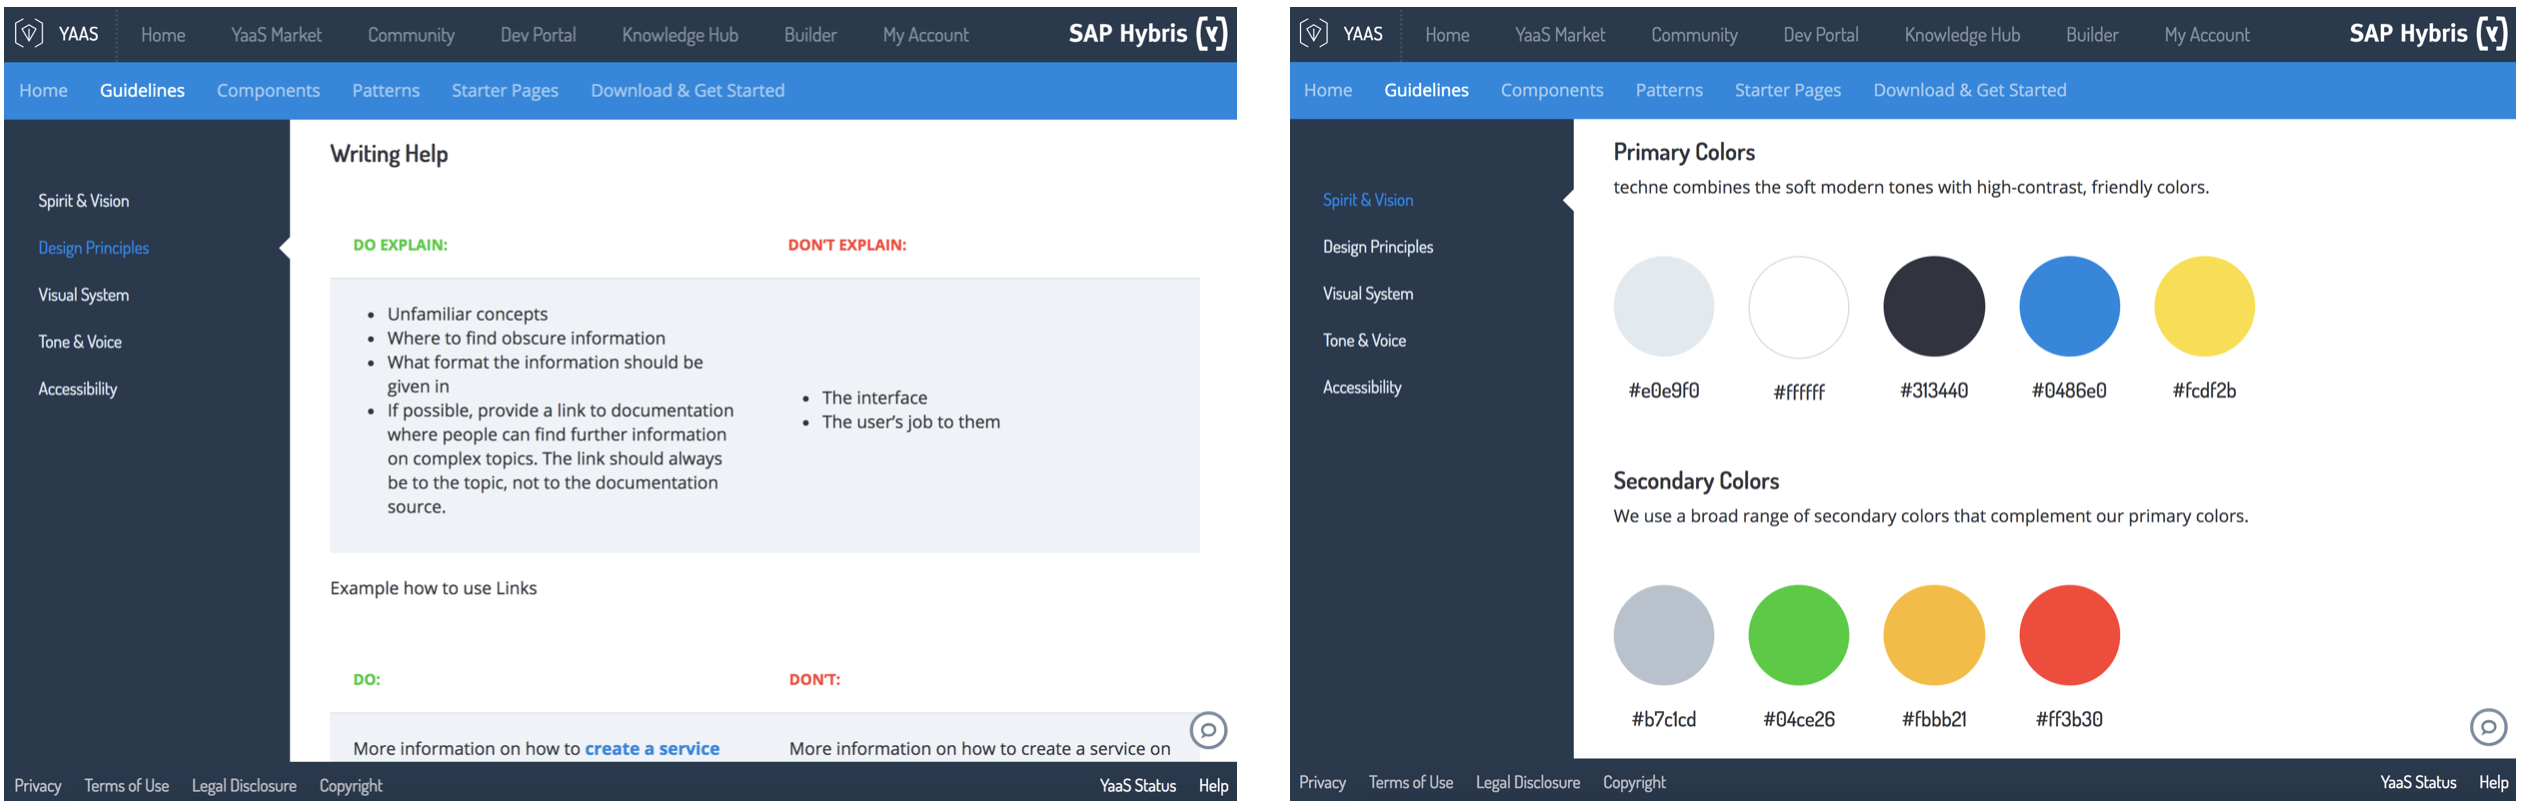 Sap Hybris Techne User Interface Design Guidelines And By Jens Rusitschka Medium